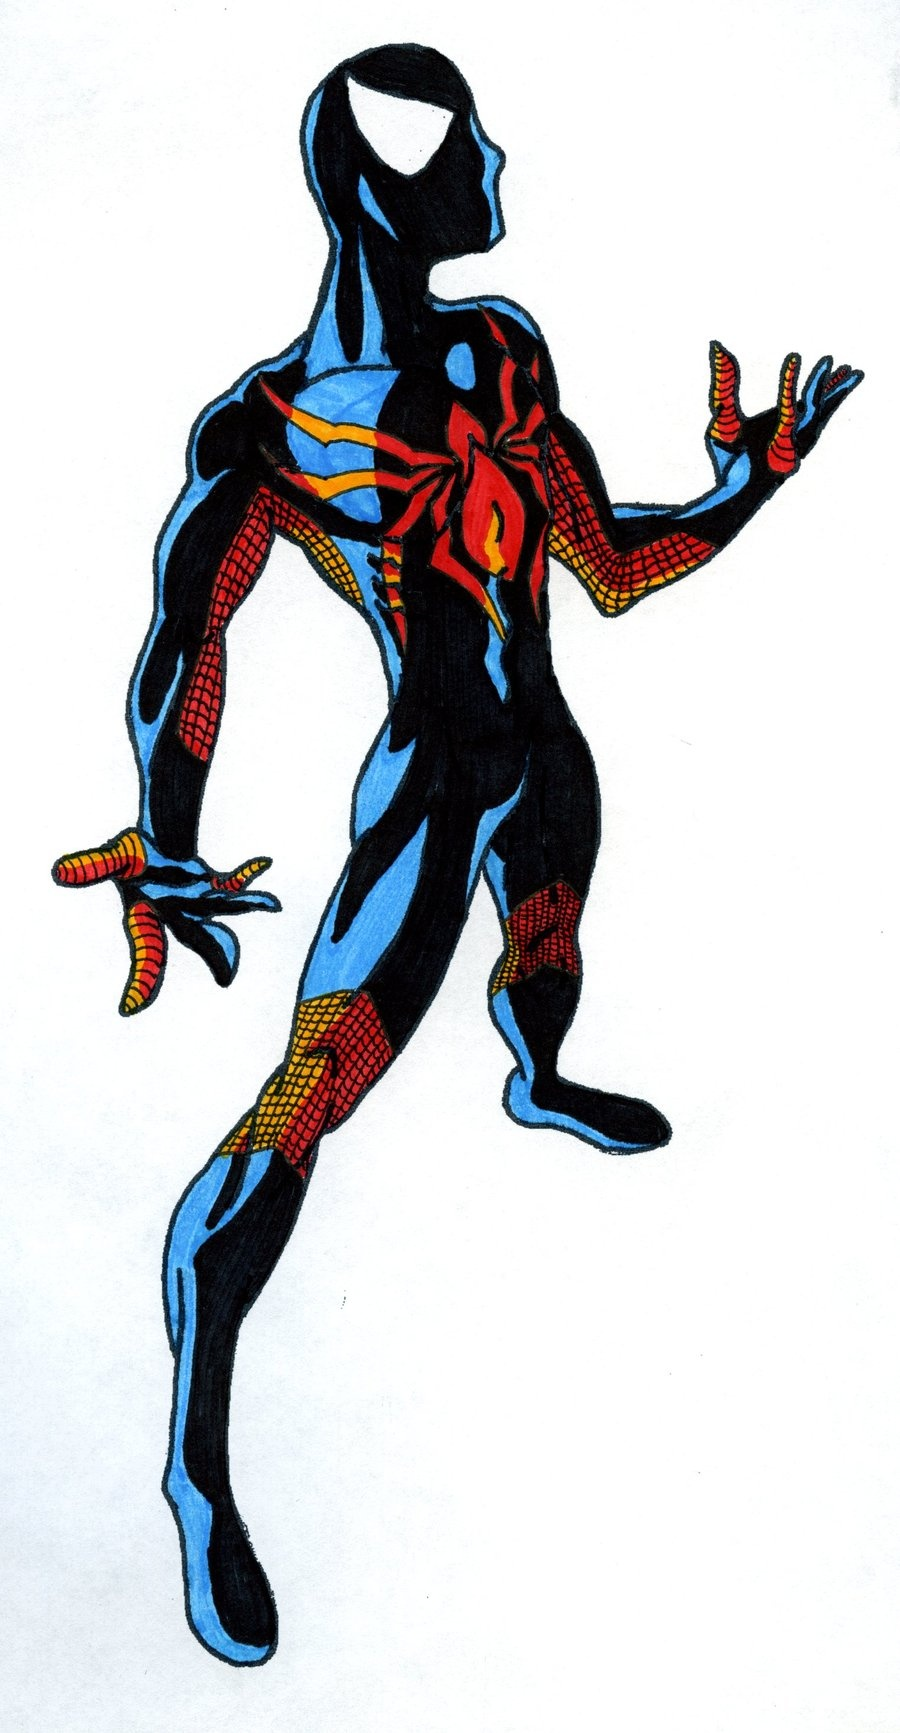 Is Spider-Man the greatest superhero of all time? Why or why not